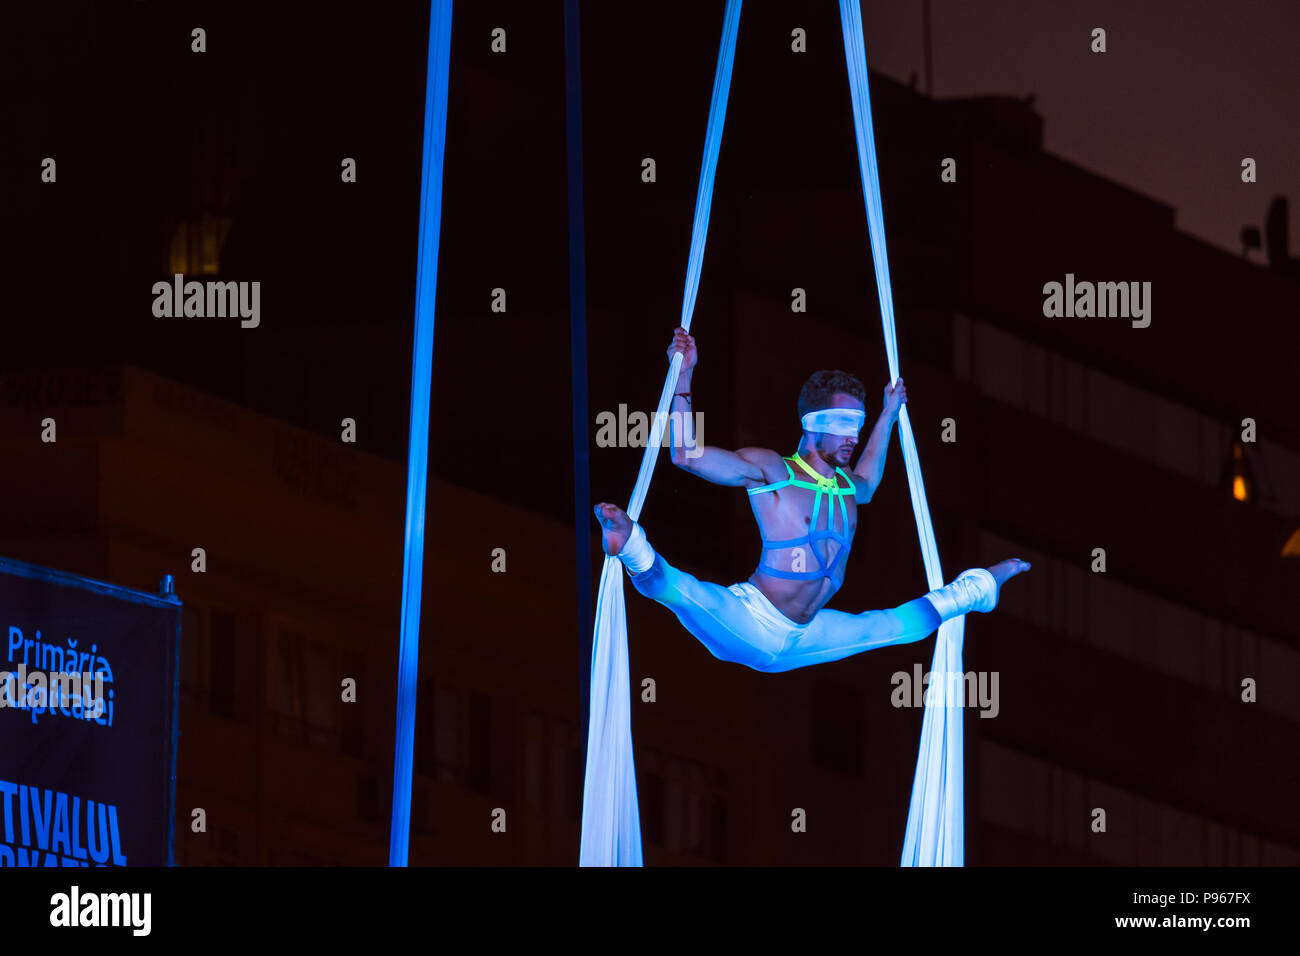 Bucharest, ROMANIA - July 14 2018: Blindfolded dancer from the Sonics in Wish performance at Street Theater Festival in Bucharest. Aerial acrobatics p - Stock Image